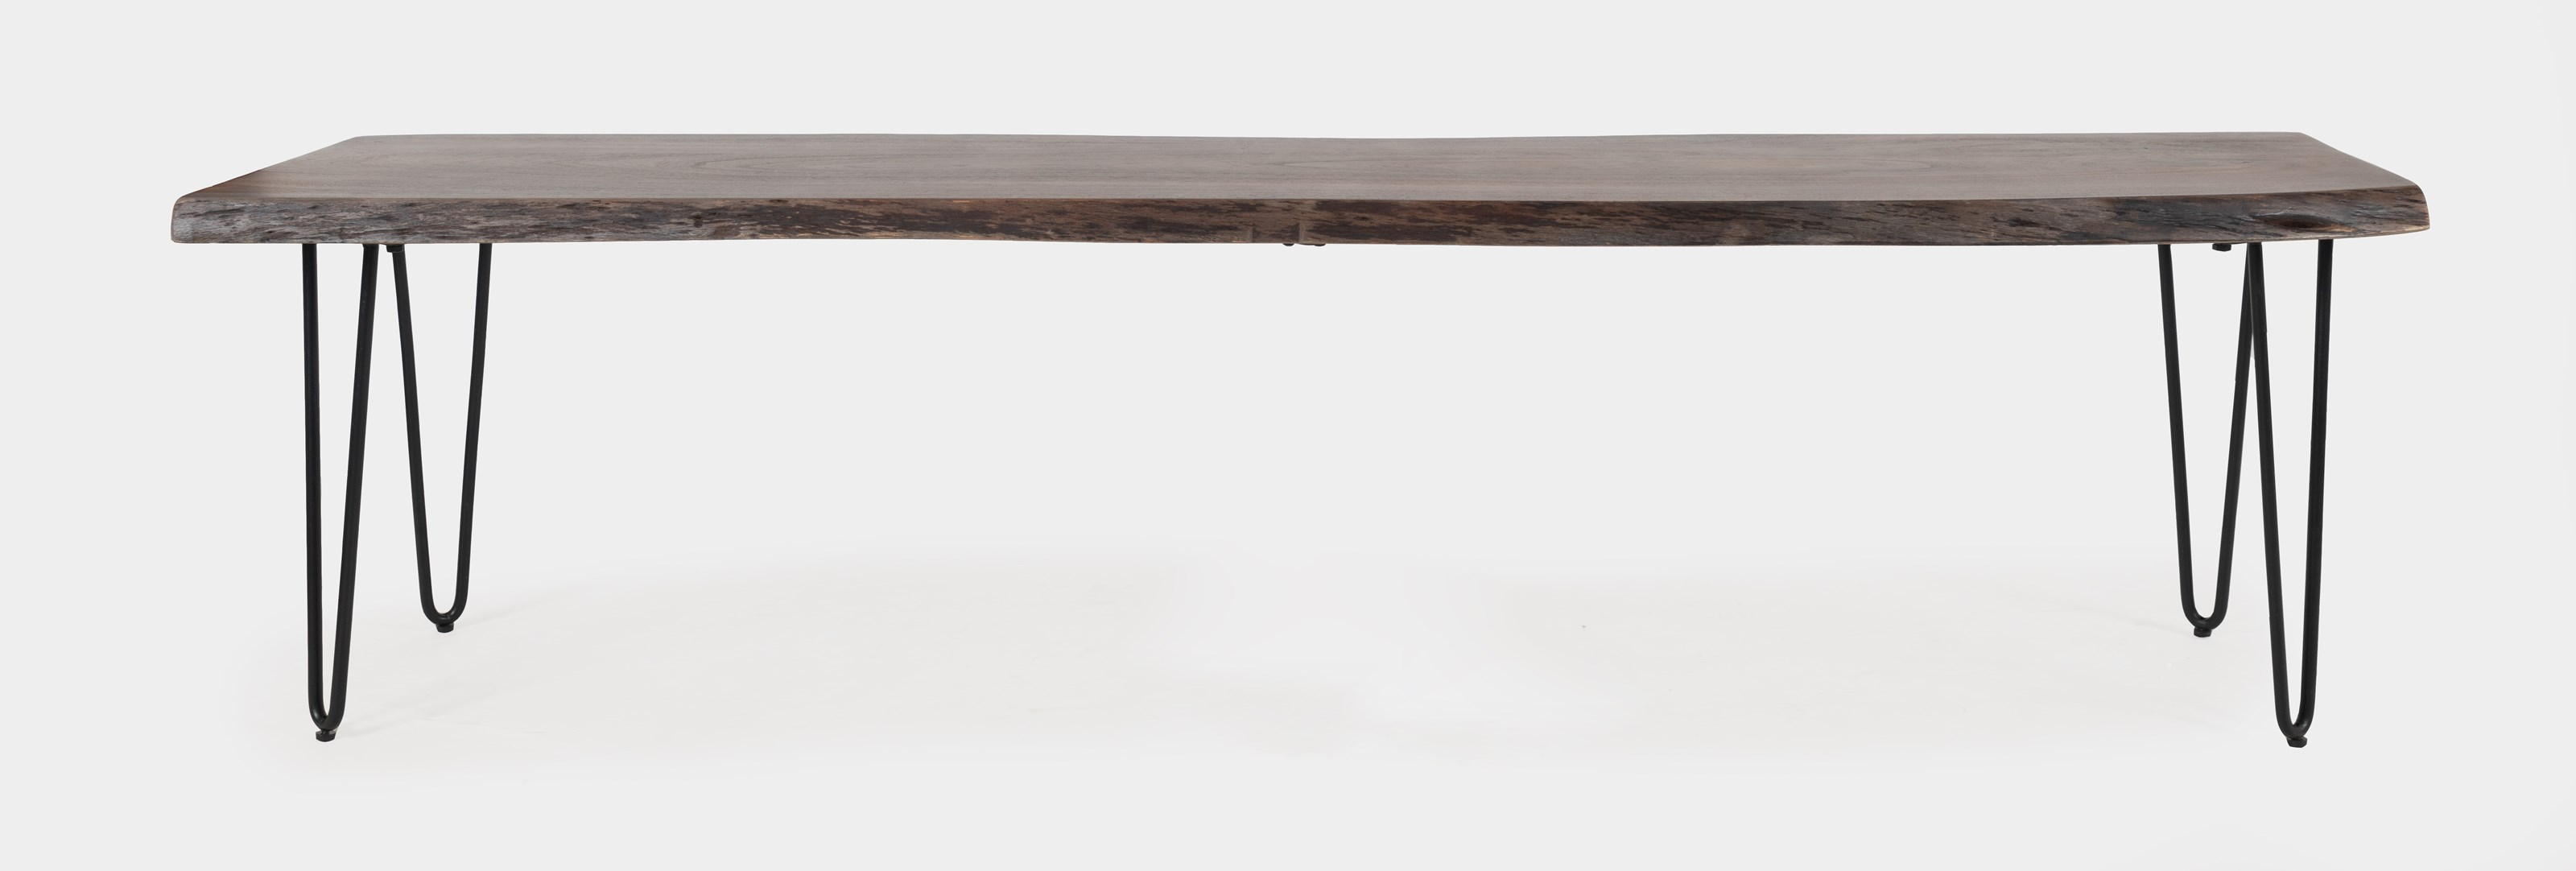 "Nature's Edge 70"" Bench by Jofran at Dean Bosler's"